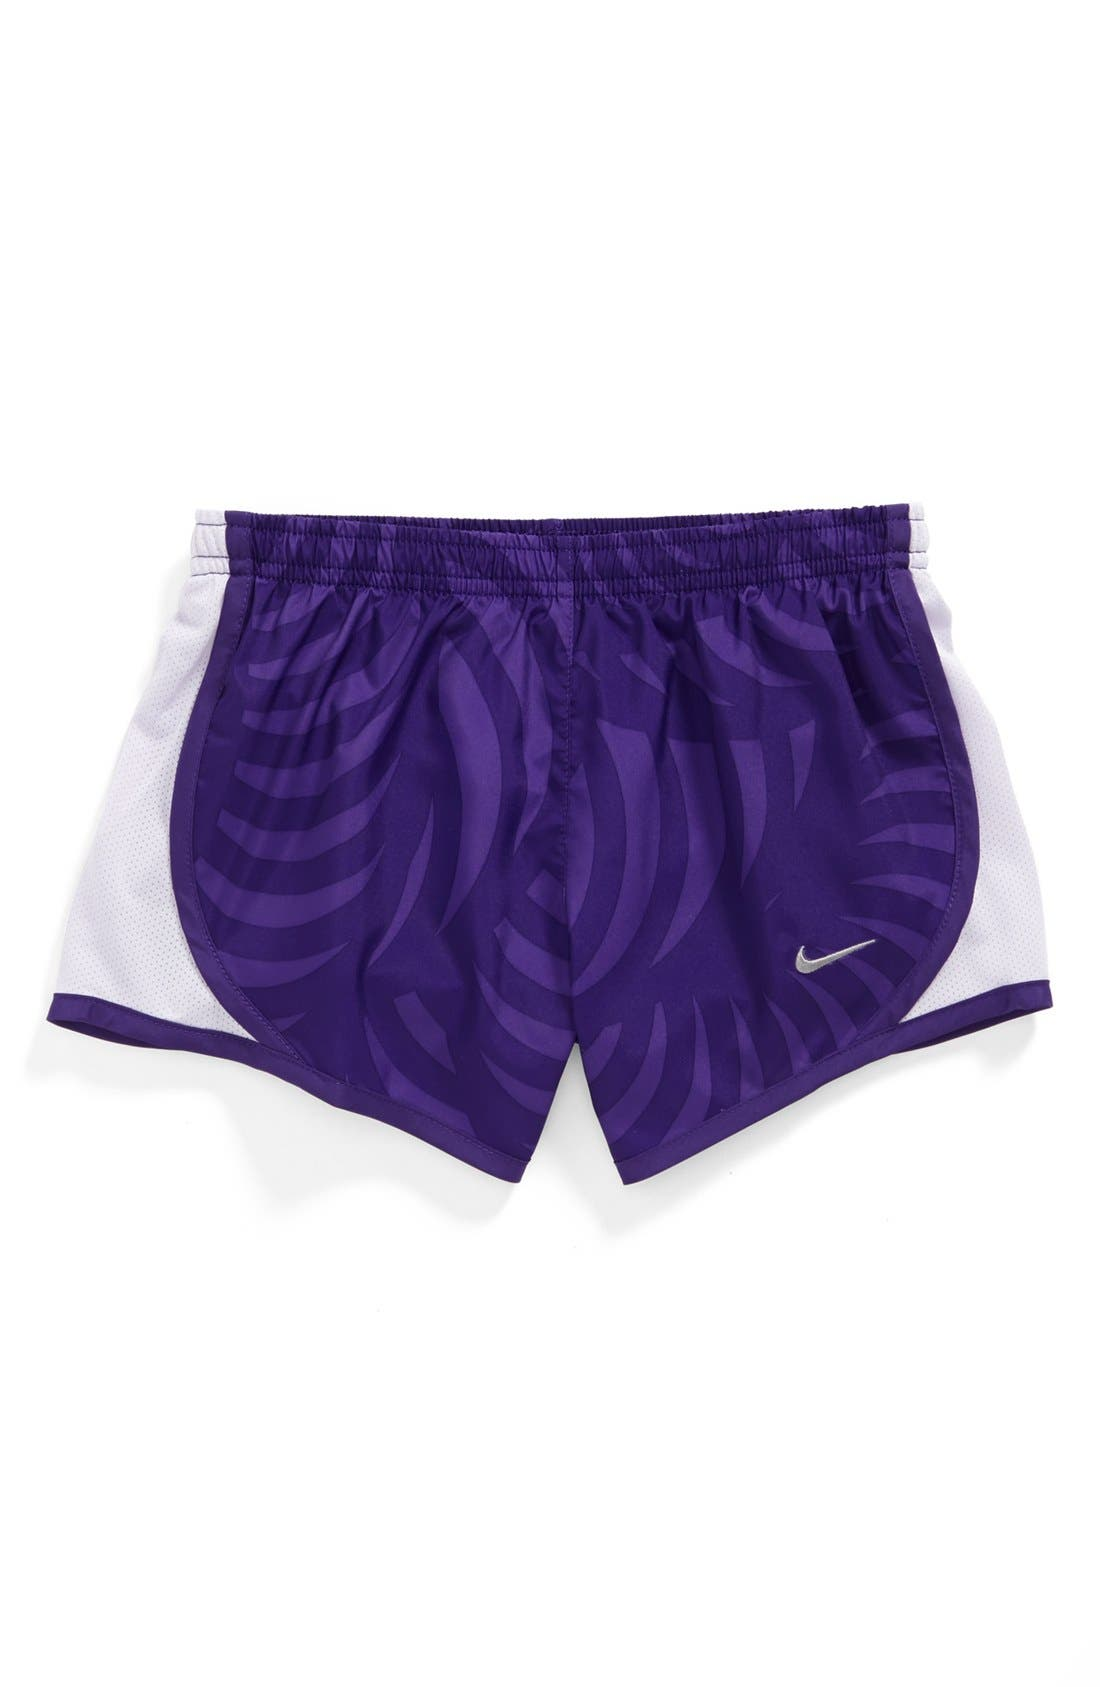 Main Image - Nike 'Tempo' Running Shorts (Little Girls & Big Girls)